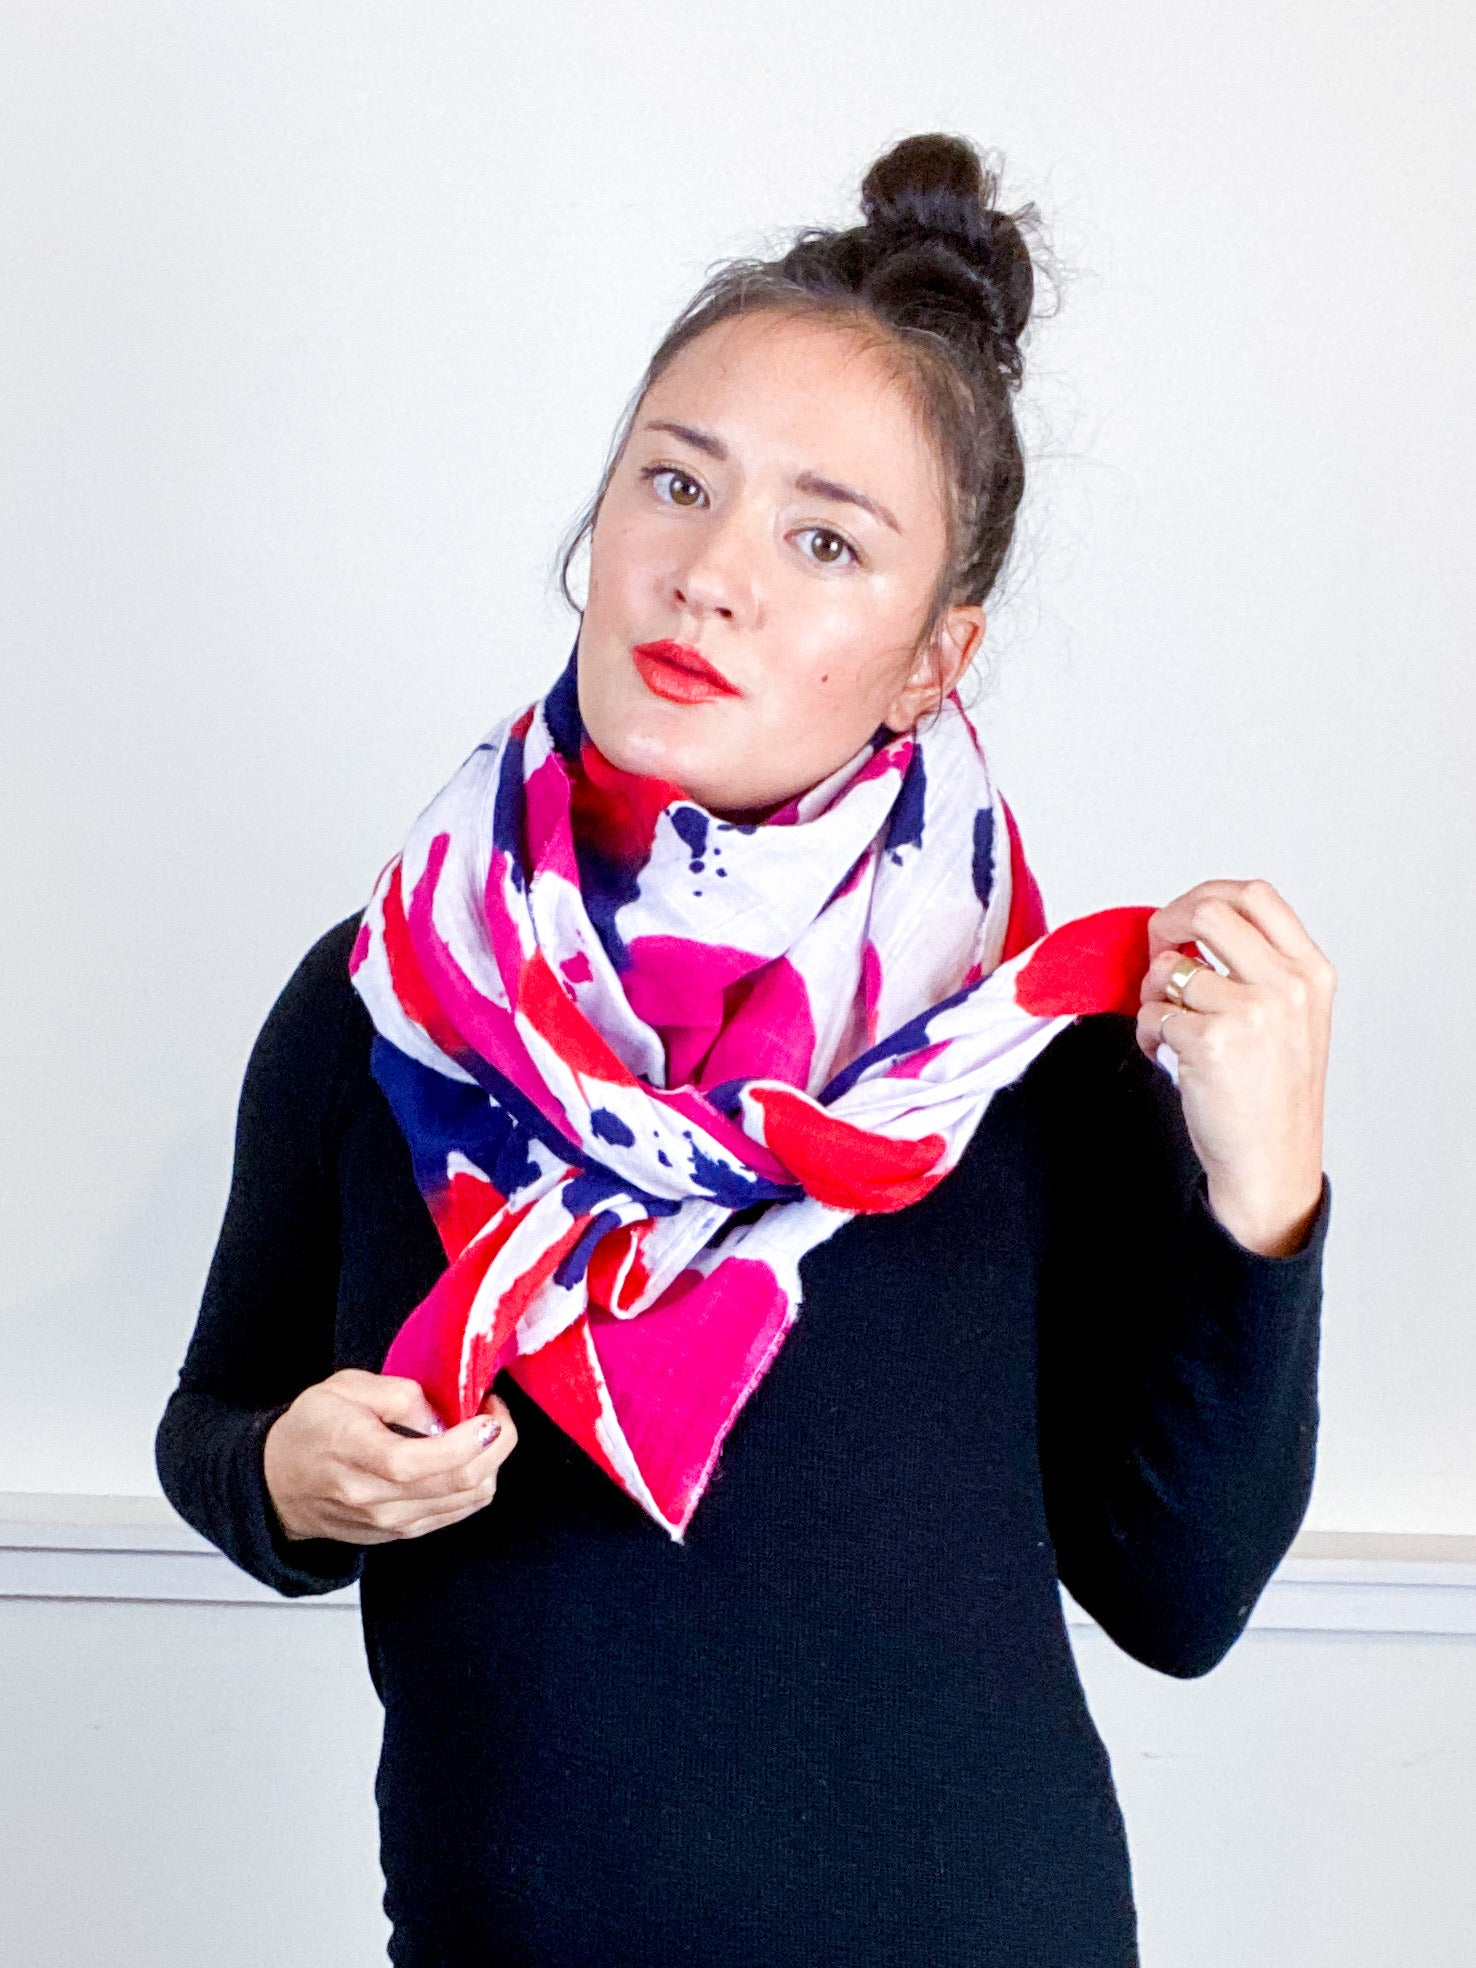 Hand-Dyed Large Square Scarf Fuchsia Scarlet Navy